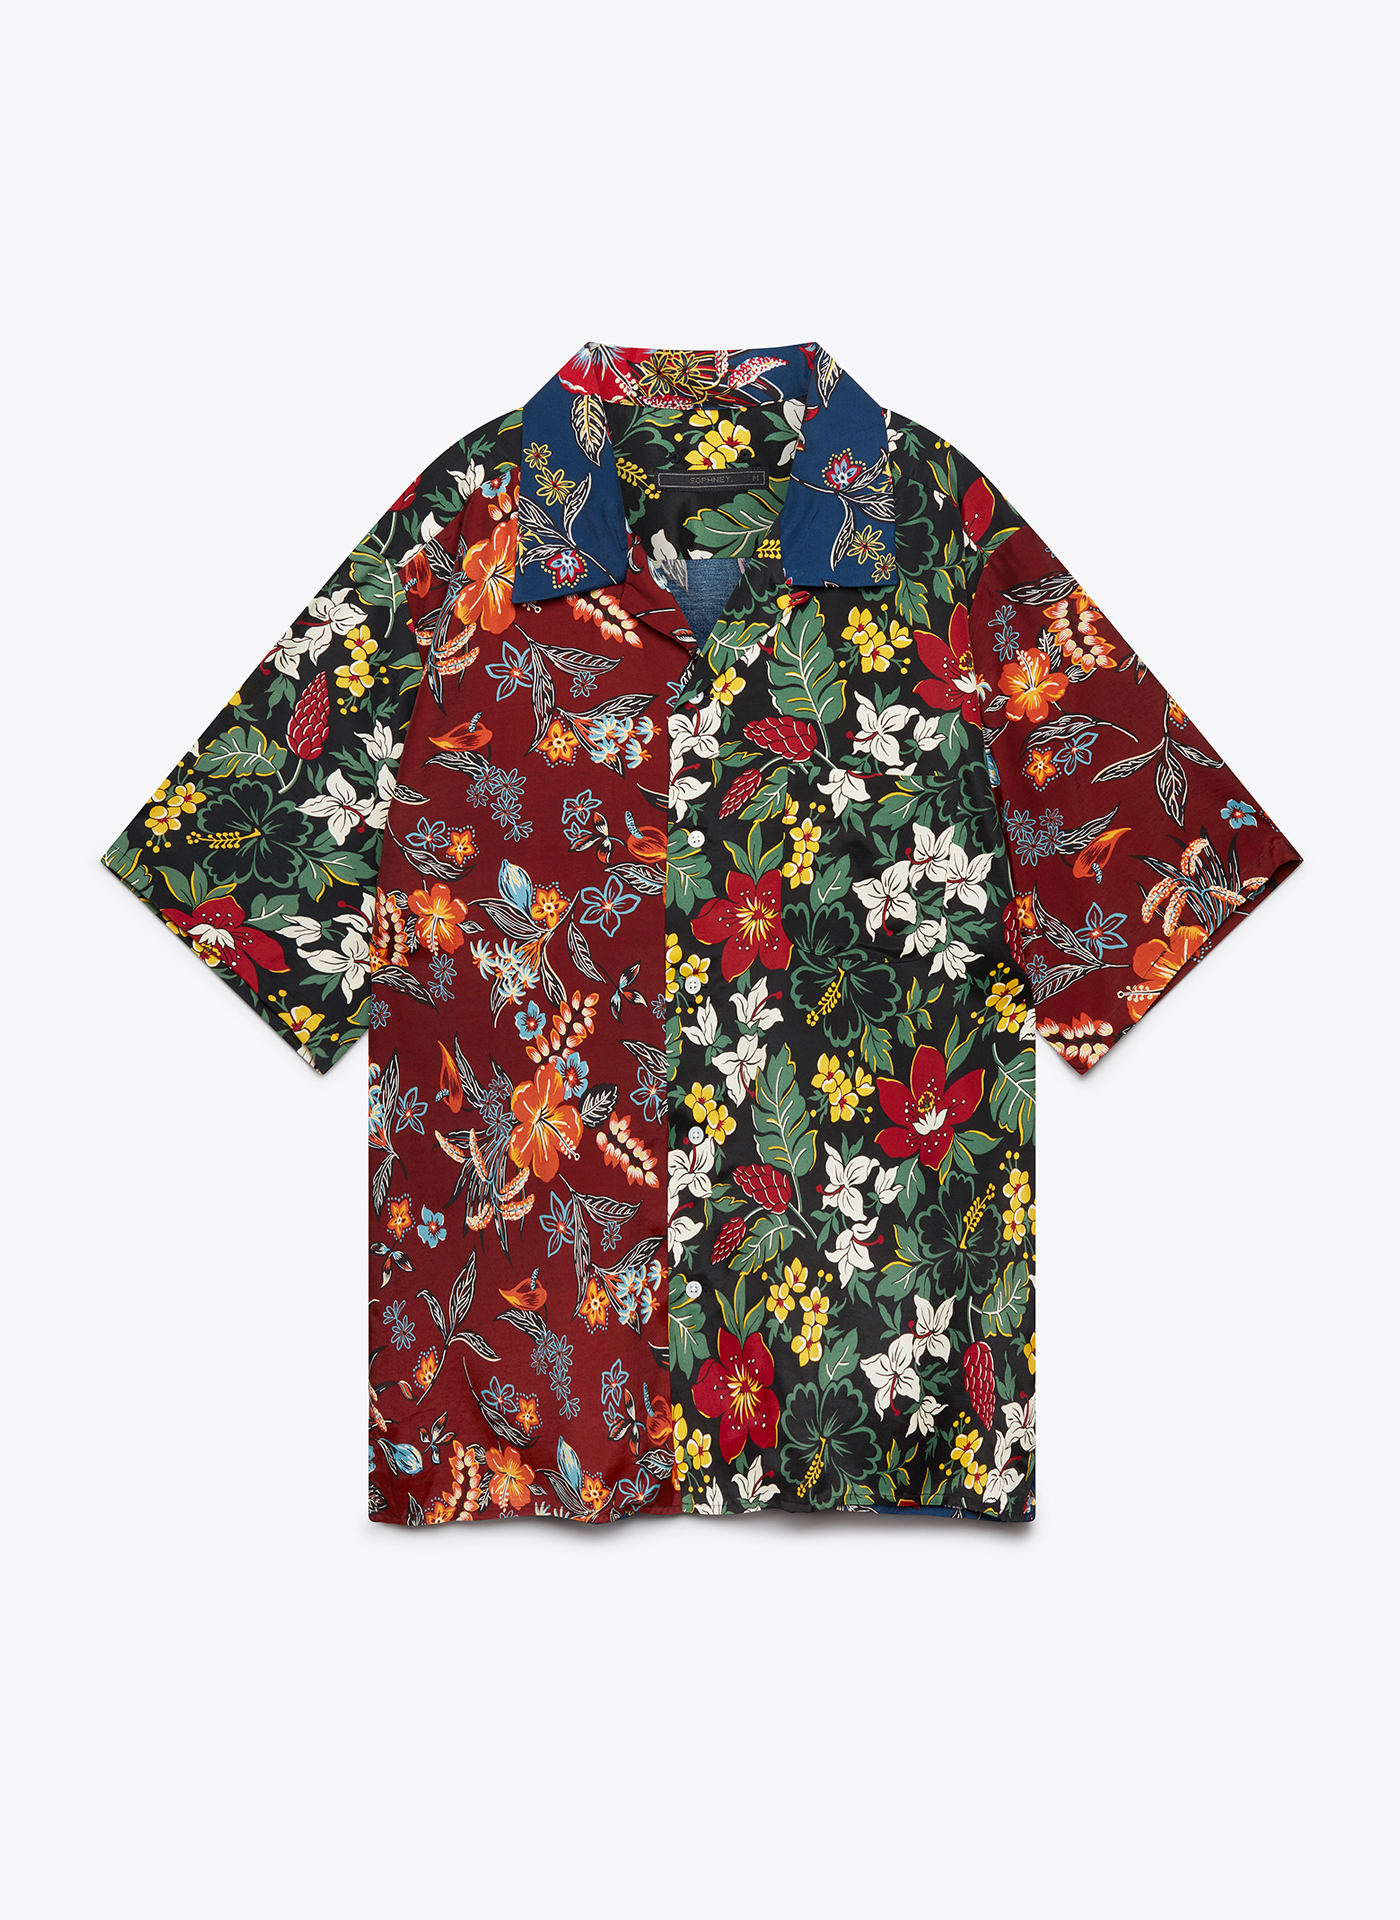 floral patterned t-shirt with buttons